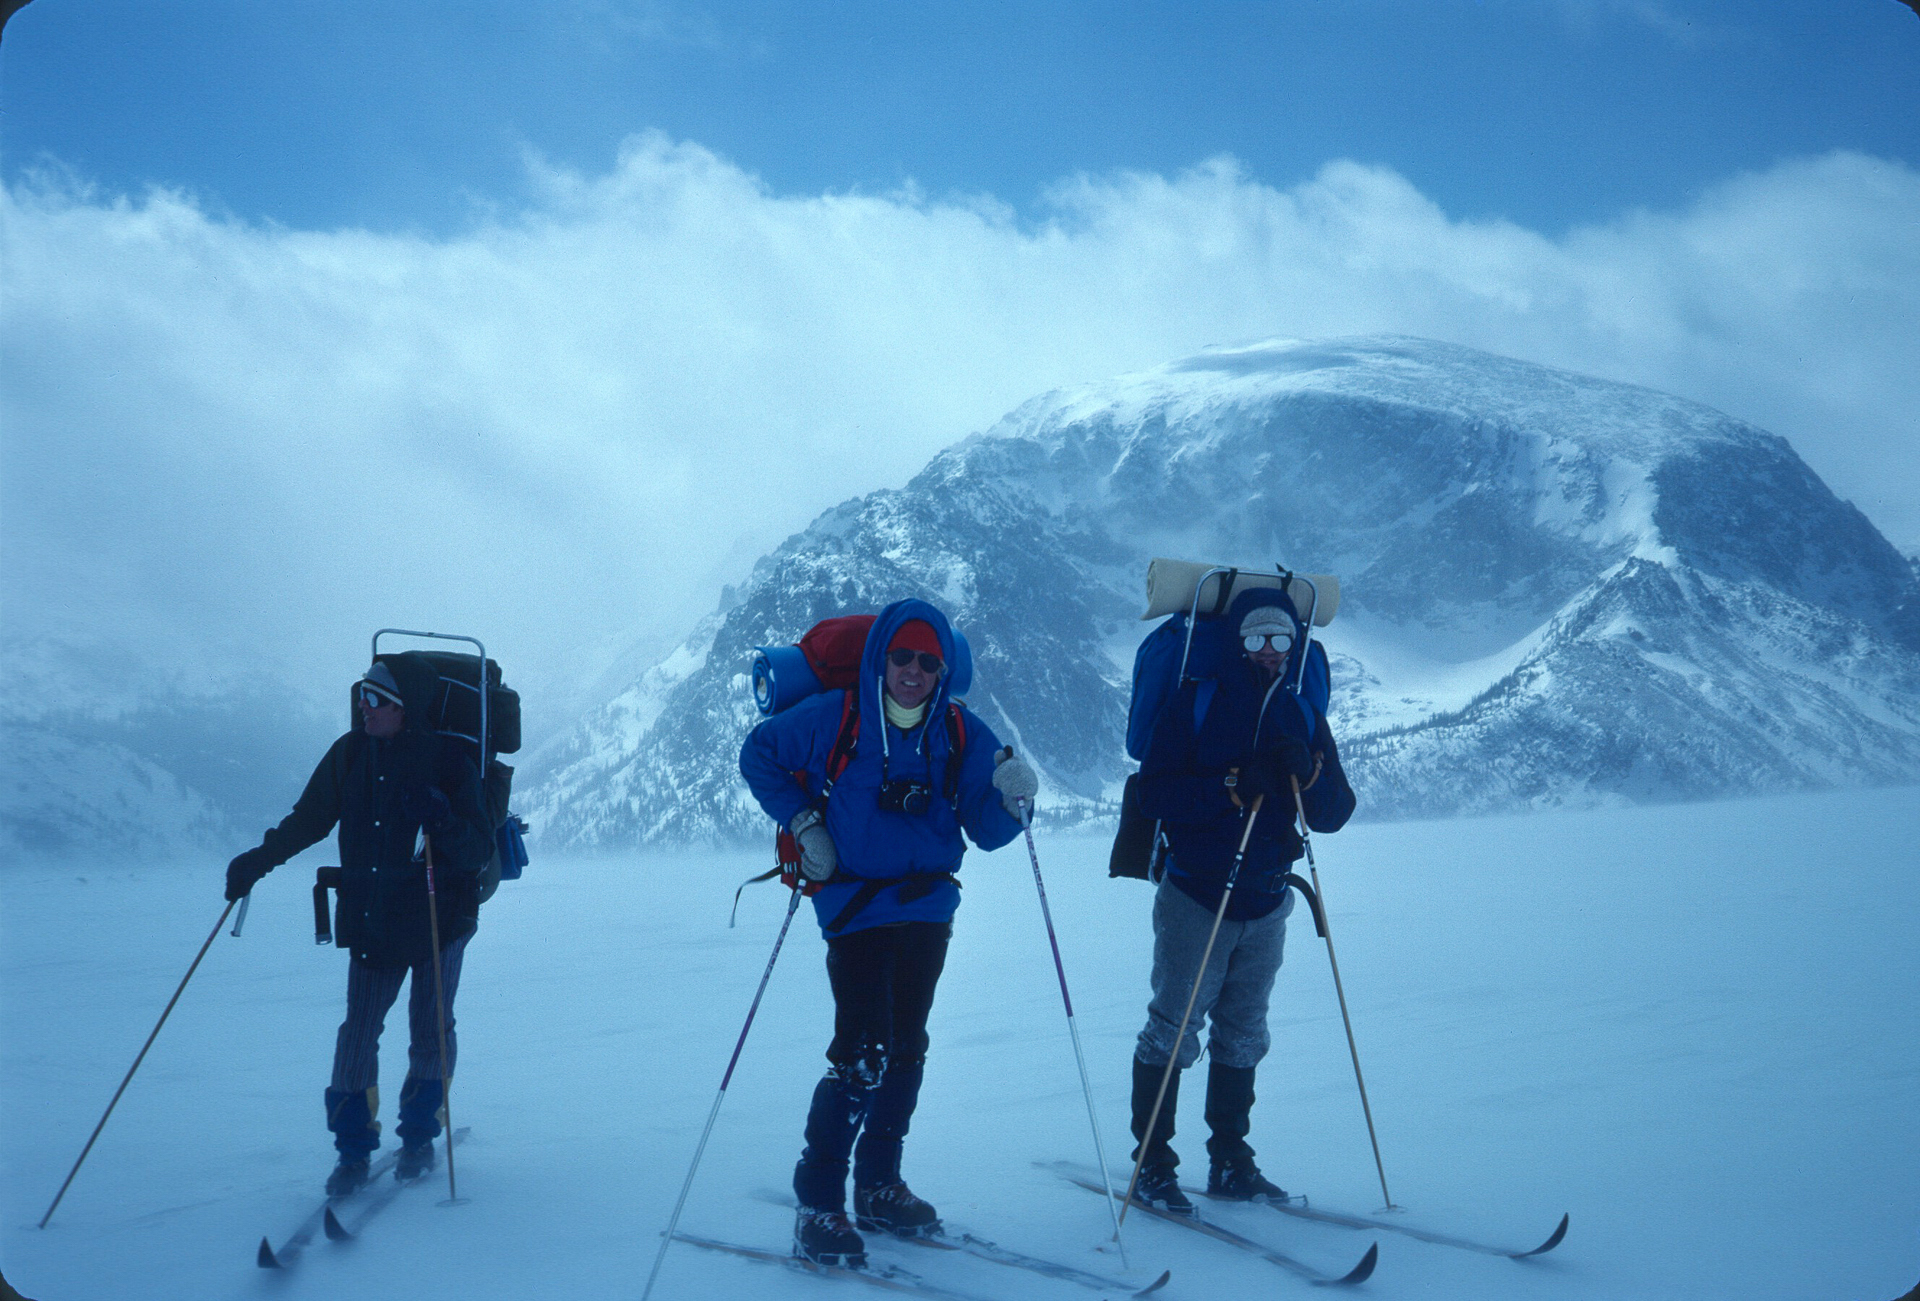 Glenn Porzak, Mike Browning and Ed Ramey during the first winter traverse of Trail Ridge Road in 1968.